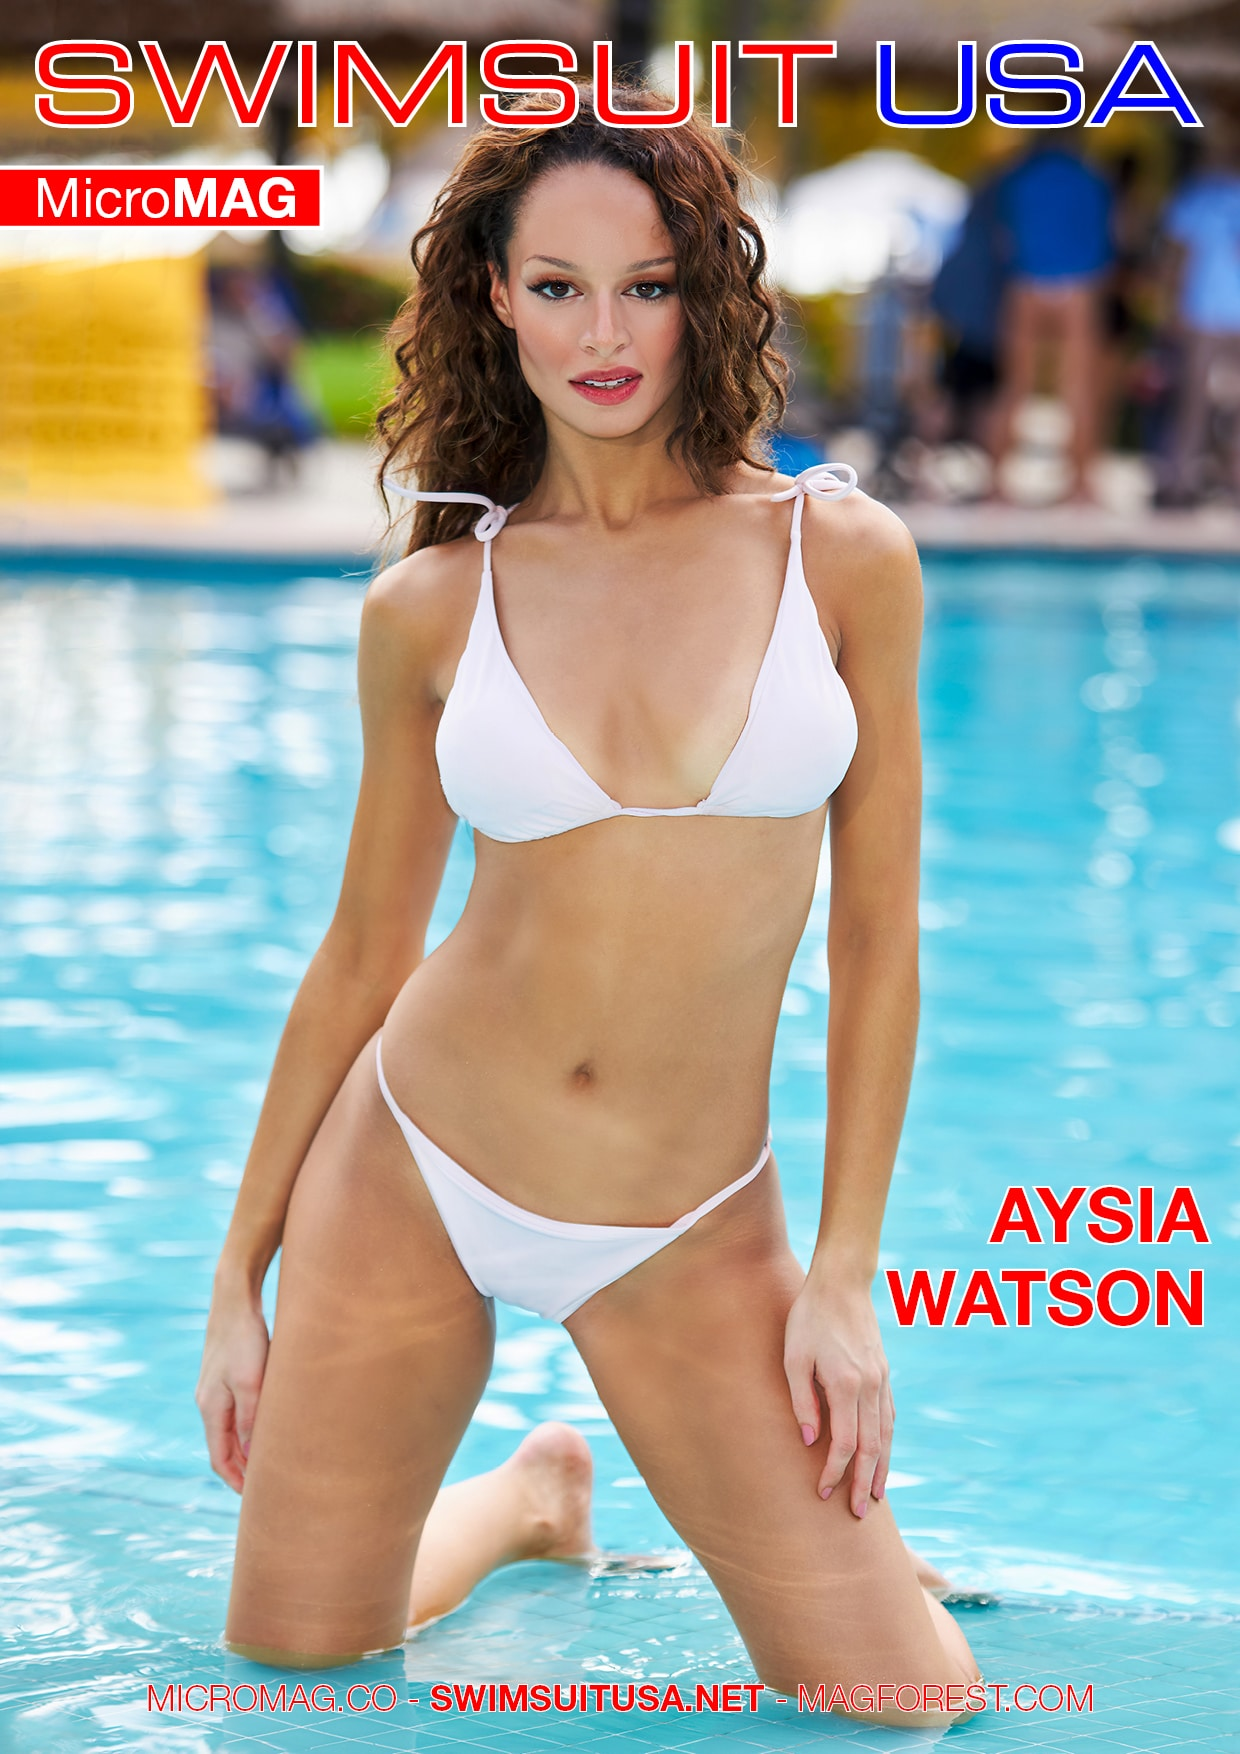 Swimsuit USA MicroMAG - Aysia Watson - Issue 3 1